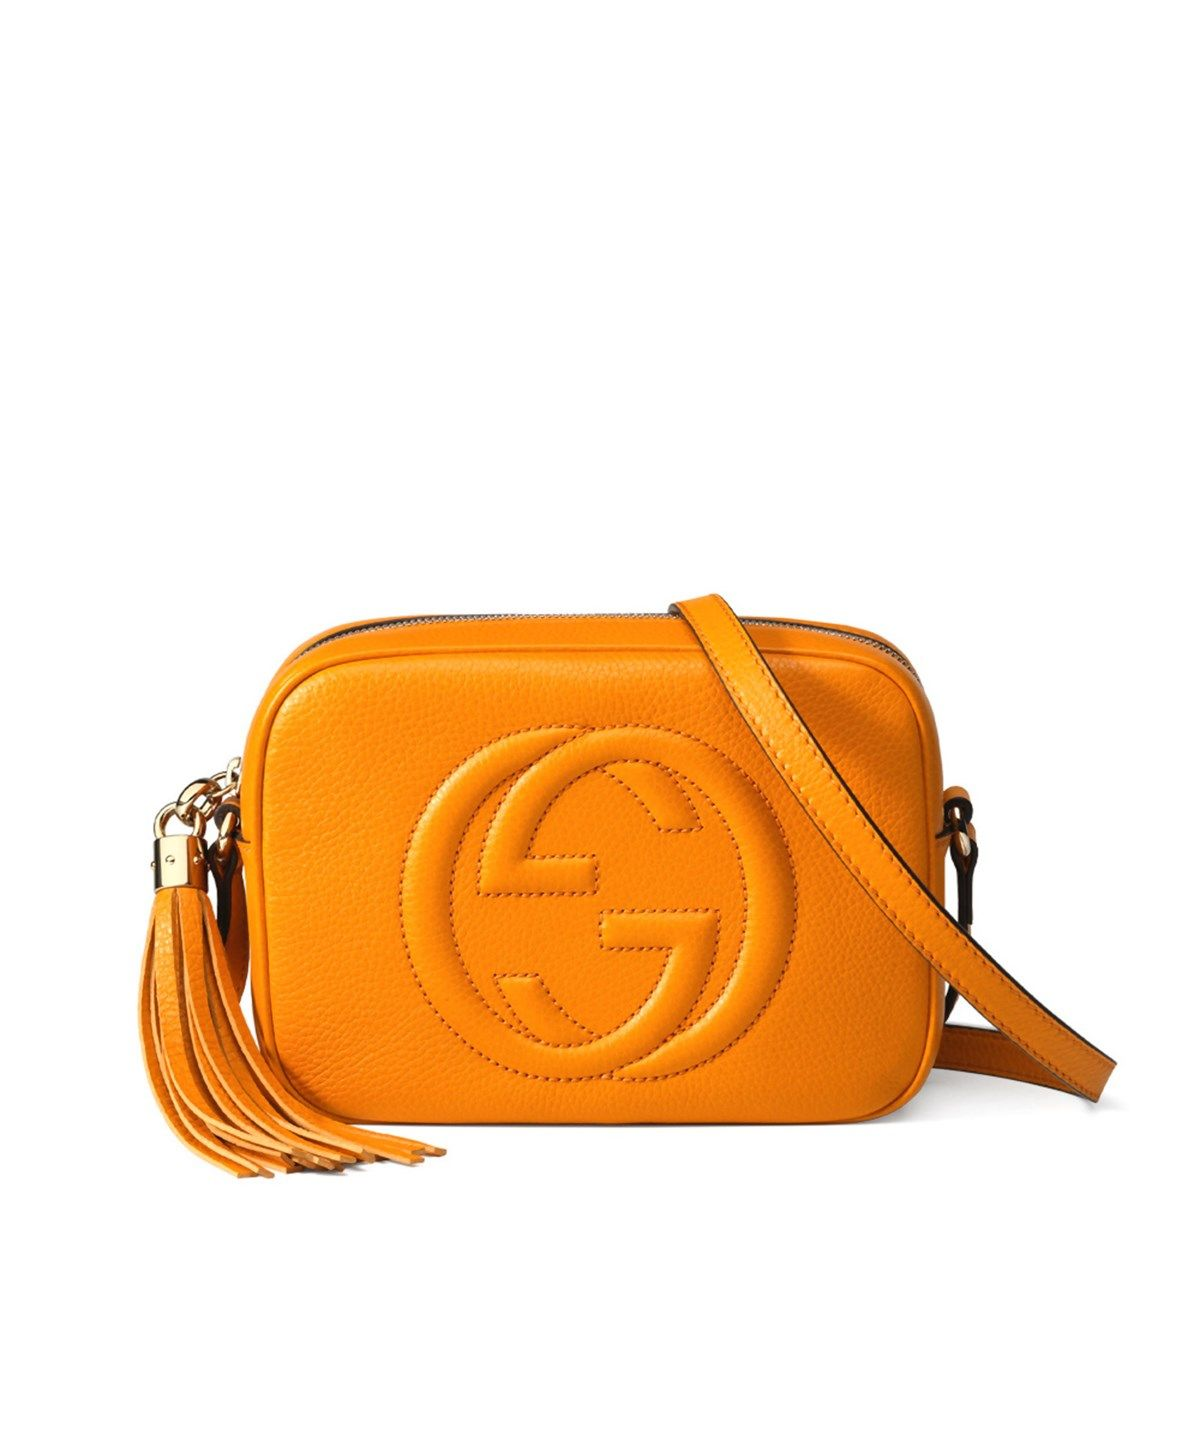 Gucci Soho Leather Disco Bag Dark Yellow Bags Shoulder Lining Linen Cotton